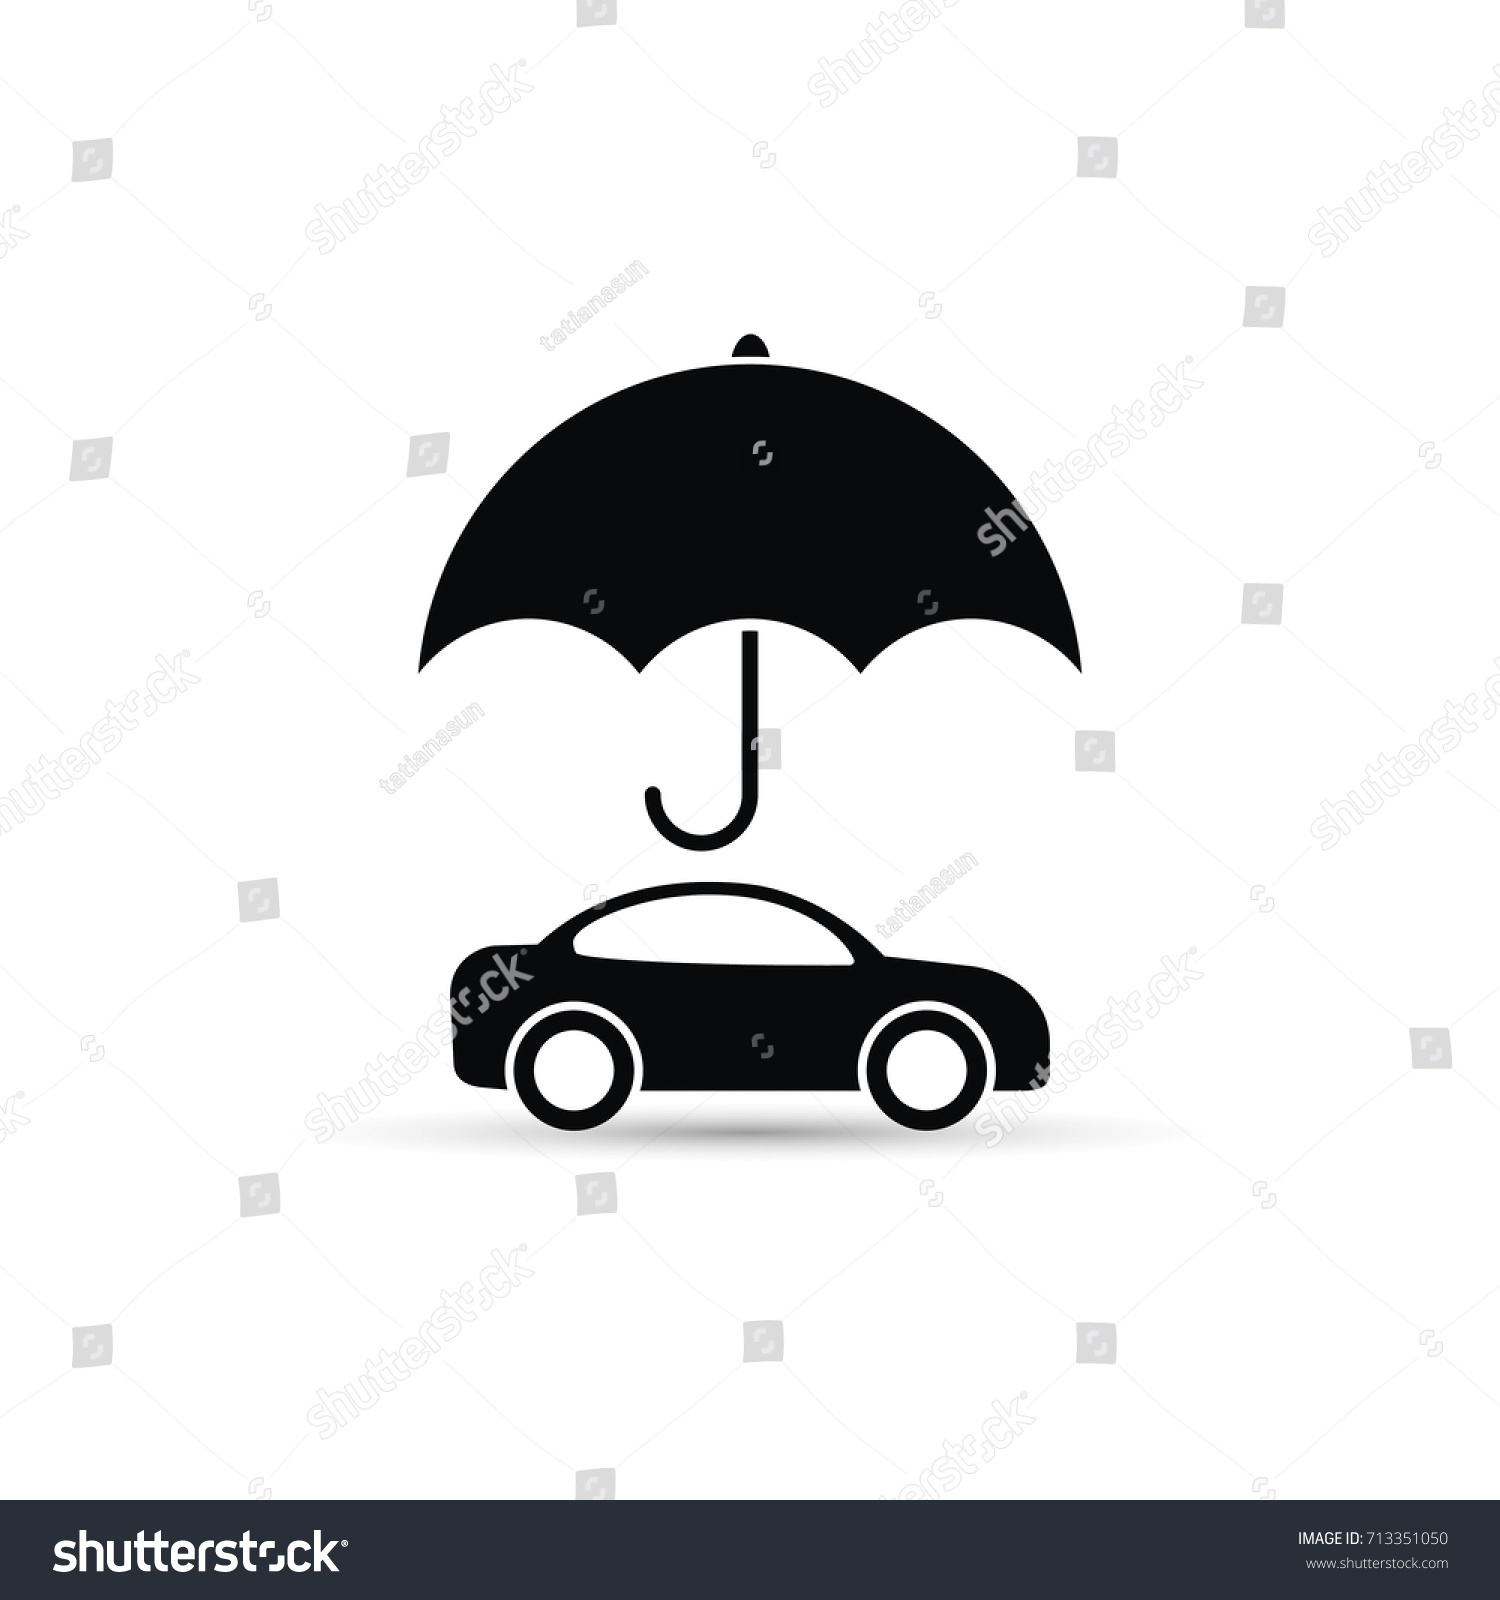 Umbrella above car icon, vector car protect illustration.